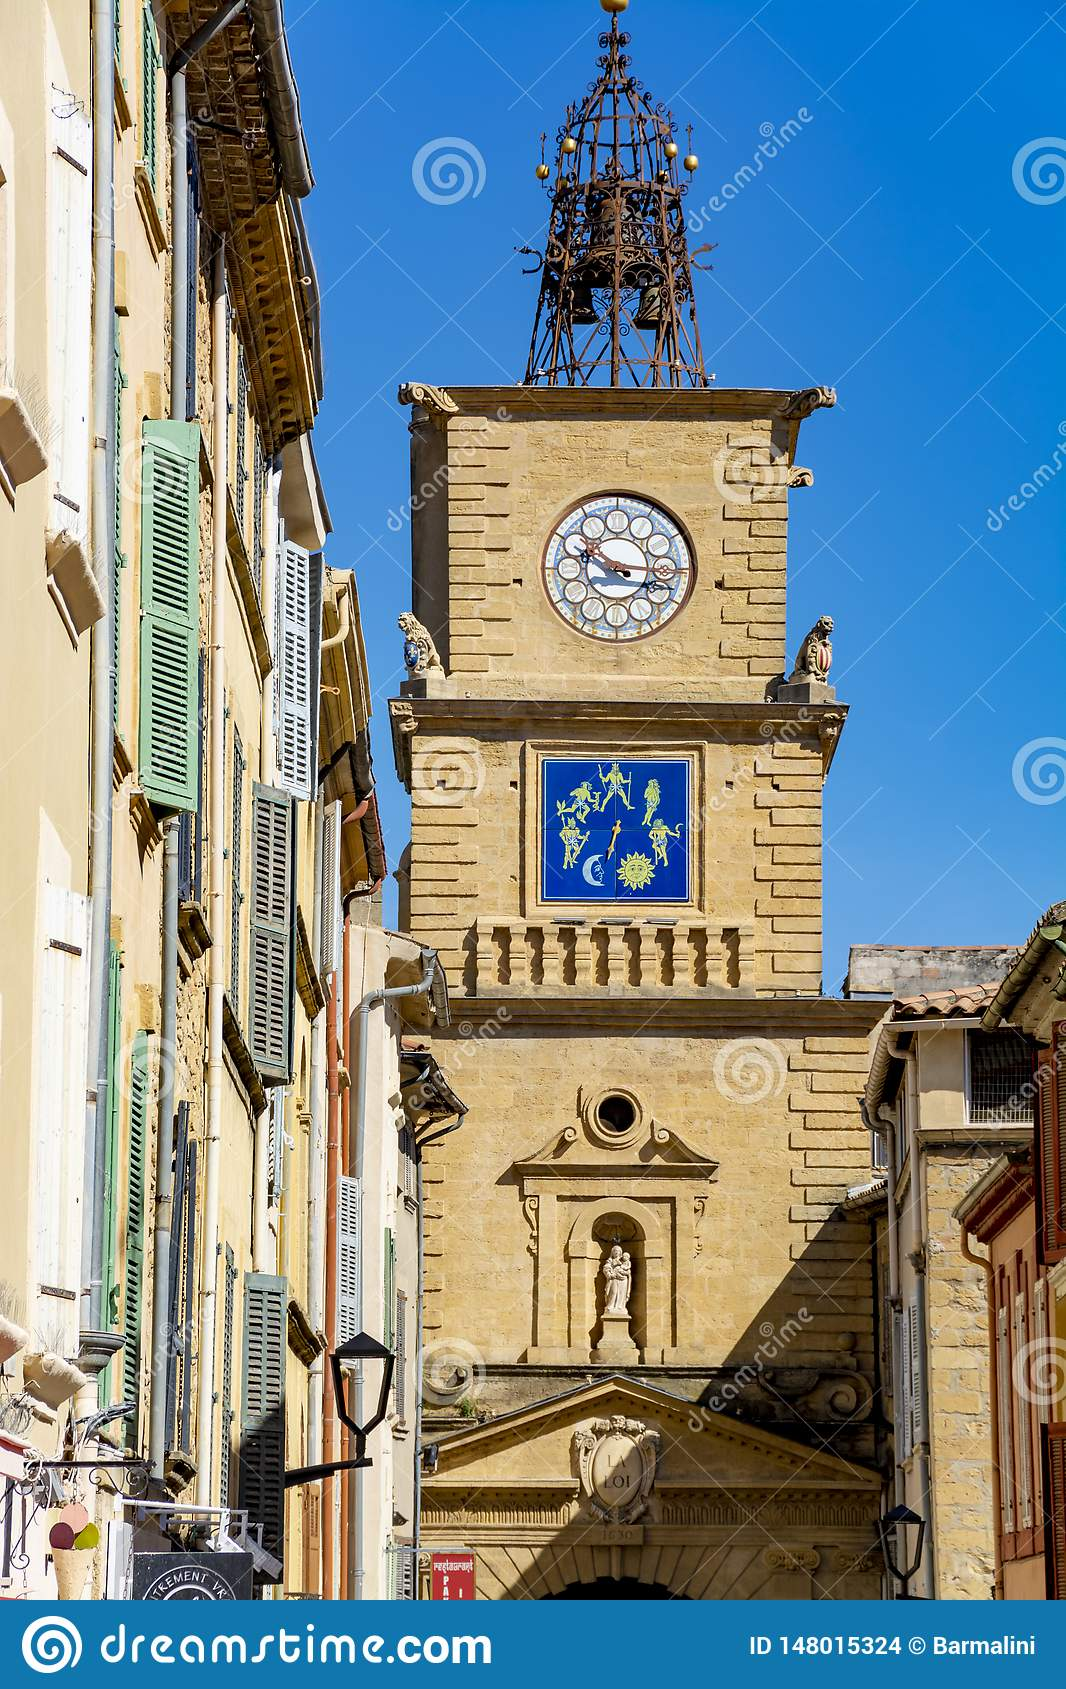 Medieval Provencal Town Salon En Provence South Of France Stock Photo Image Of Facade Medieval 148015324